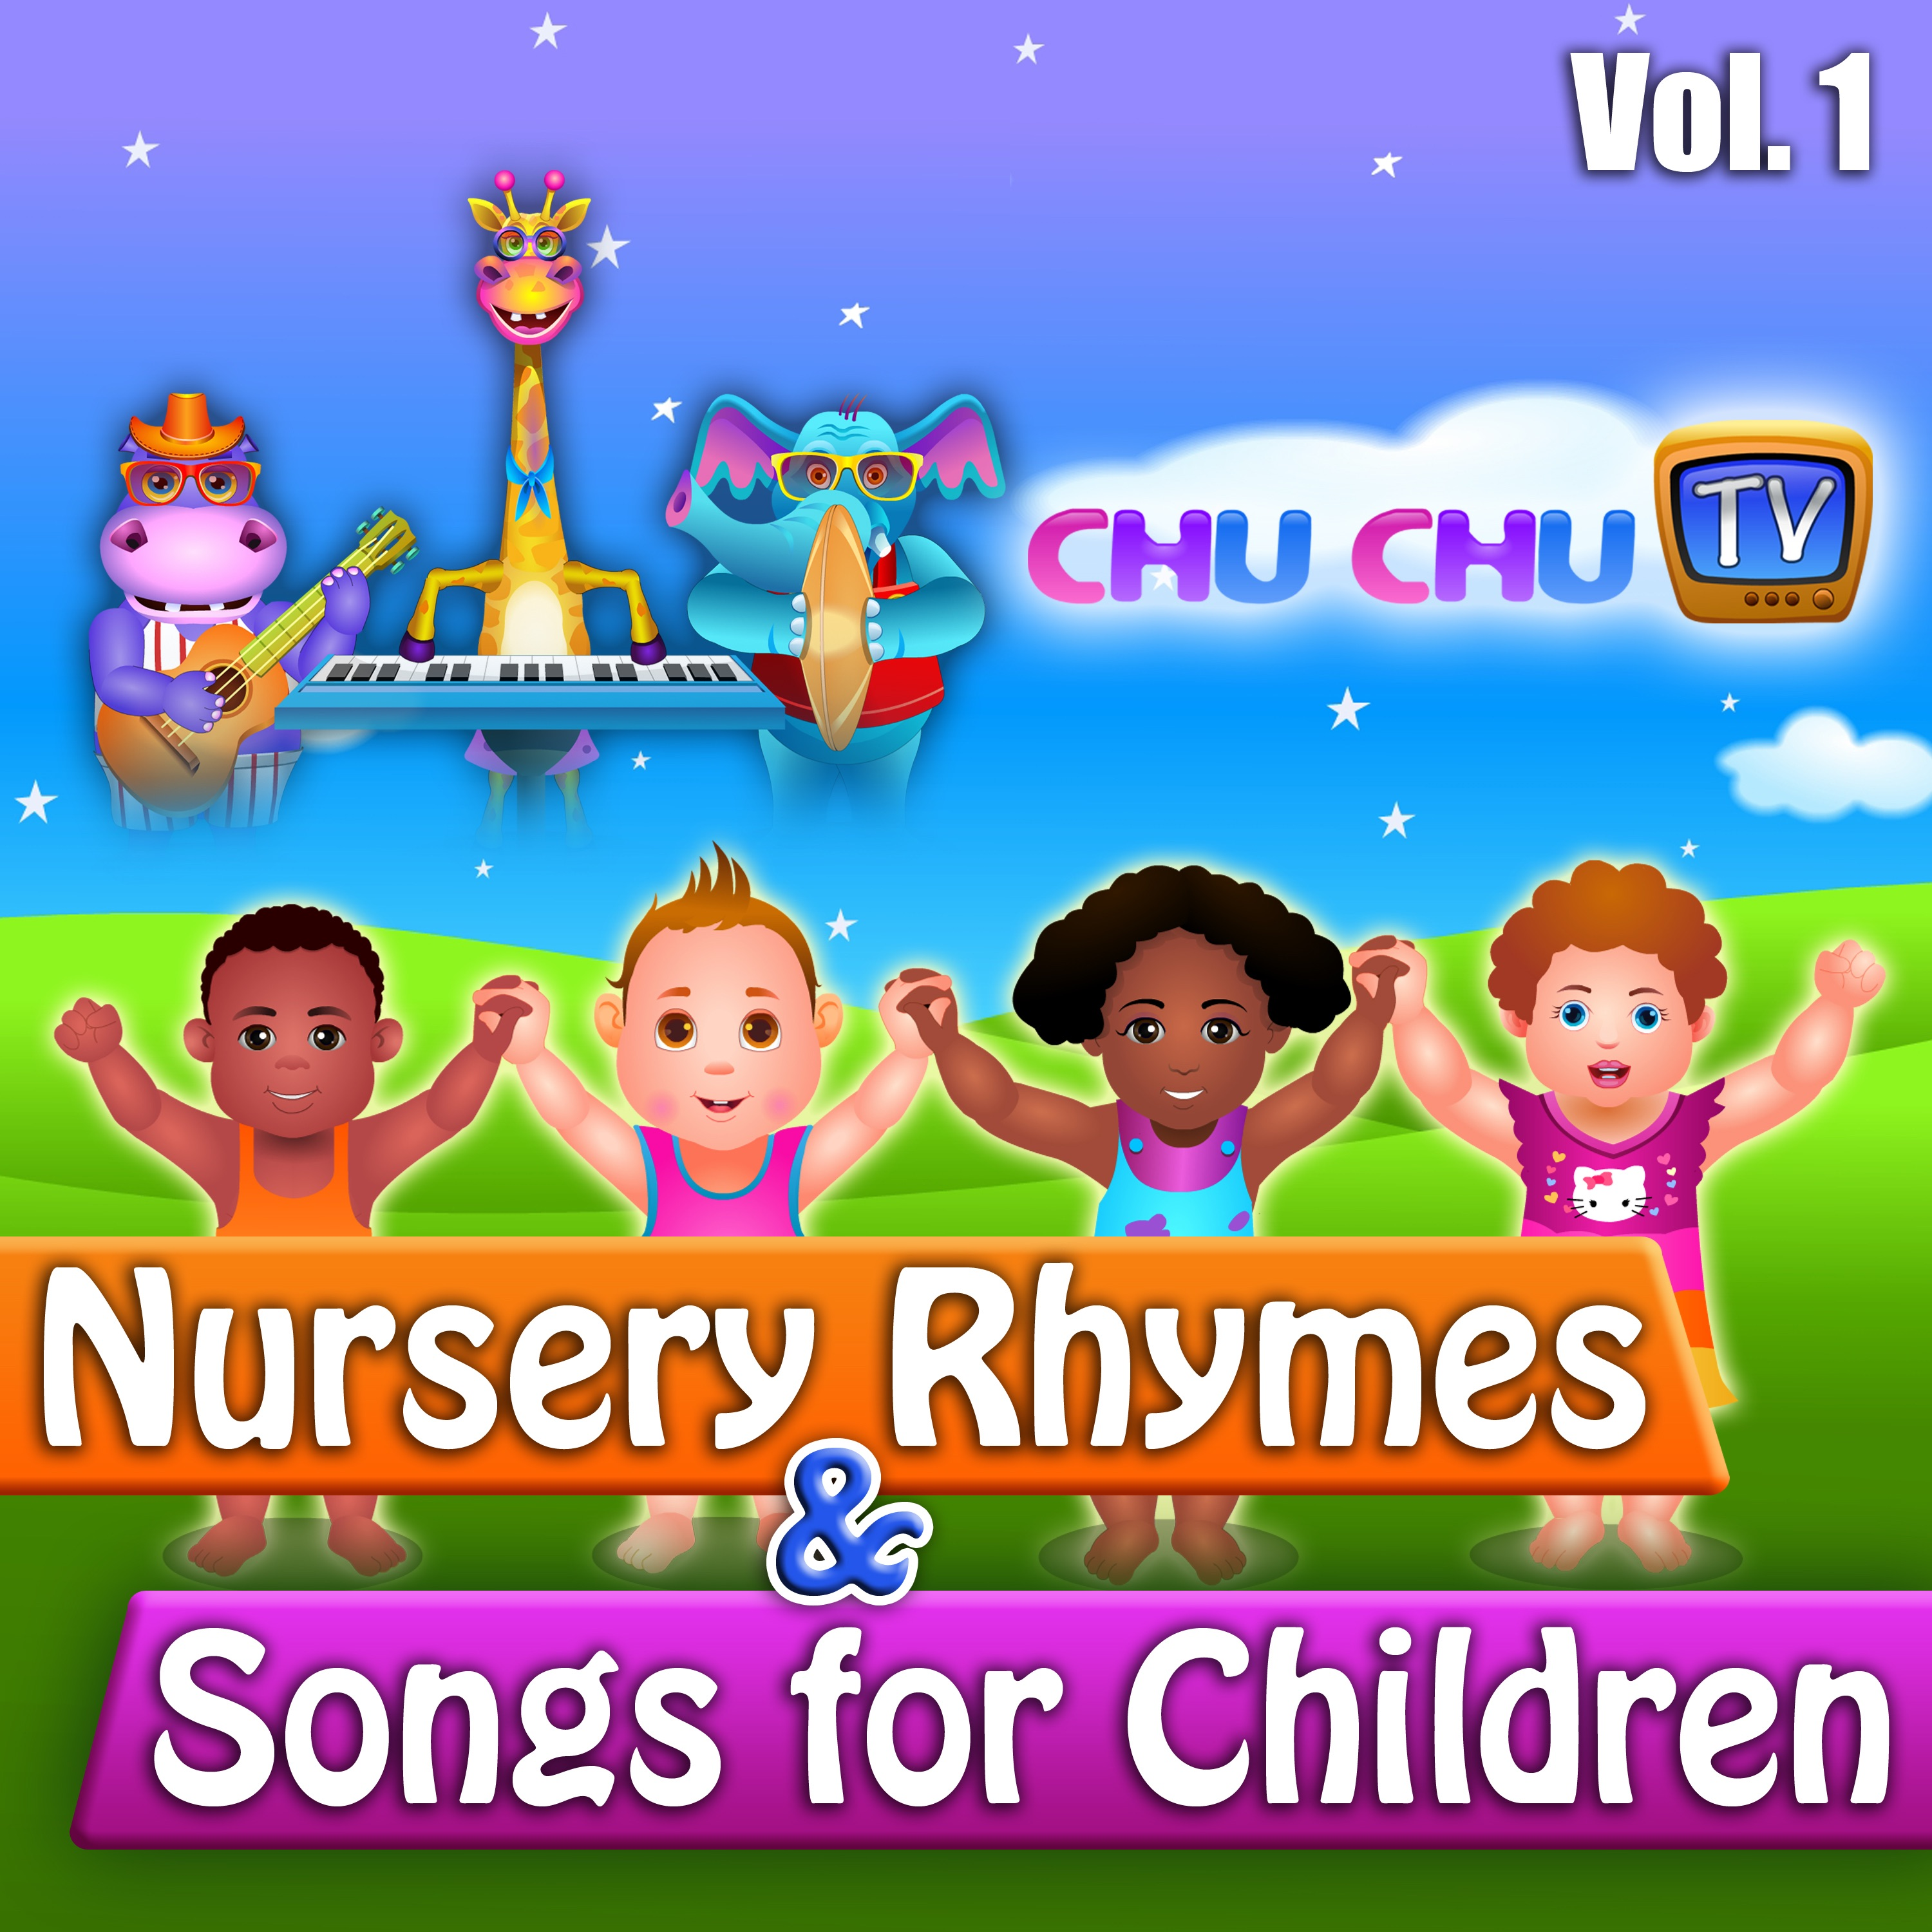 Baby Children Nursery Rhyme Song Chuchutv Nursery Rhymes And Songs For Children Vol 1 By